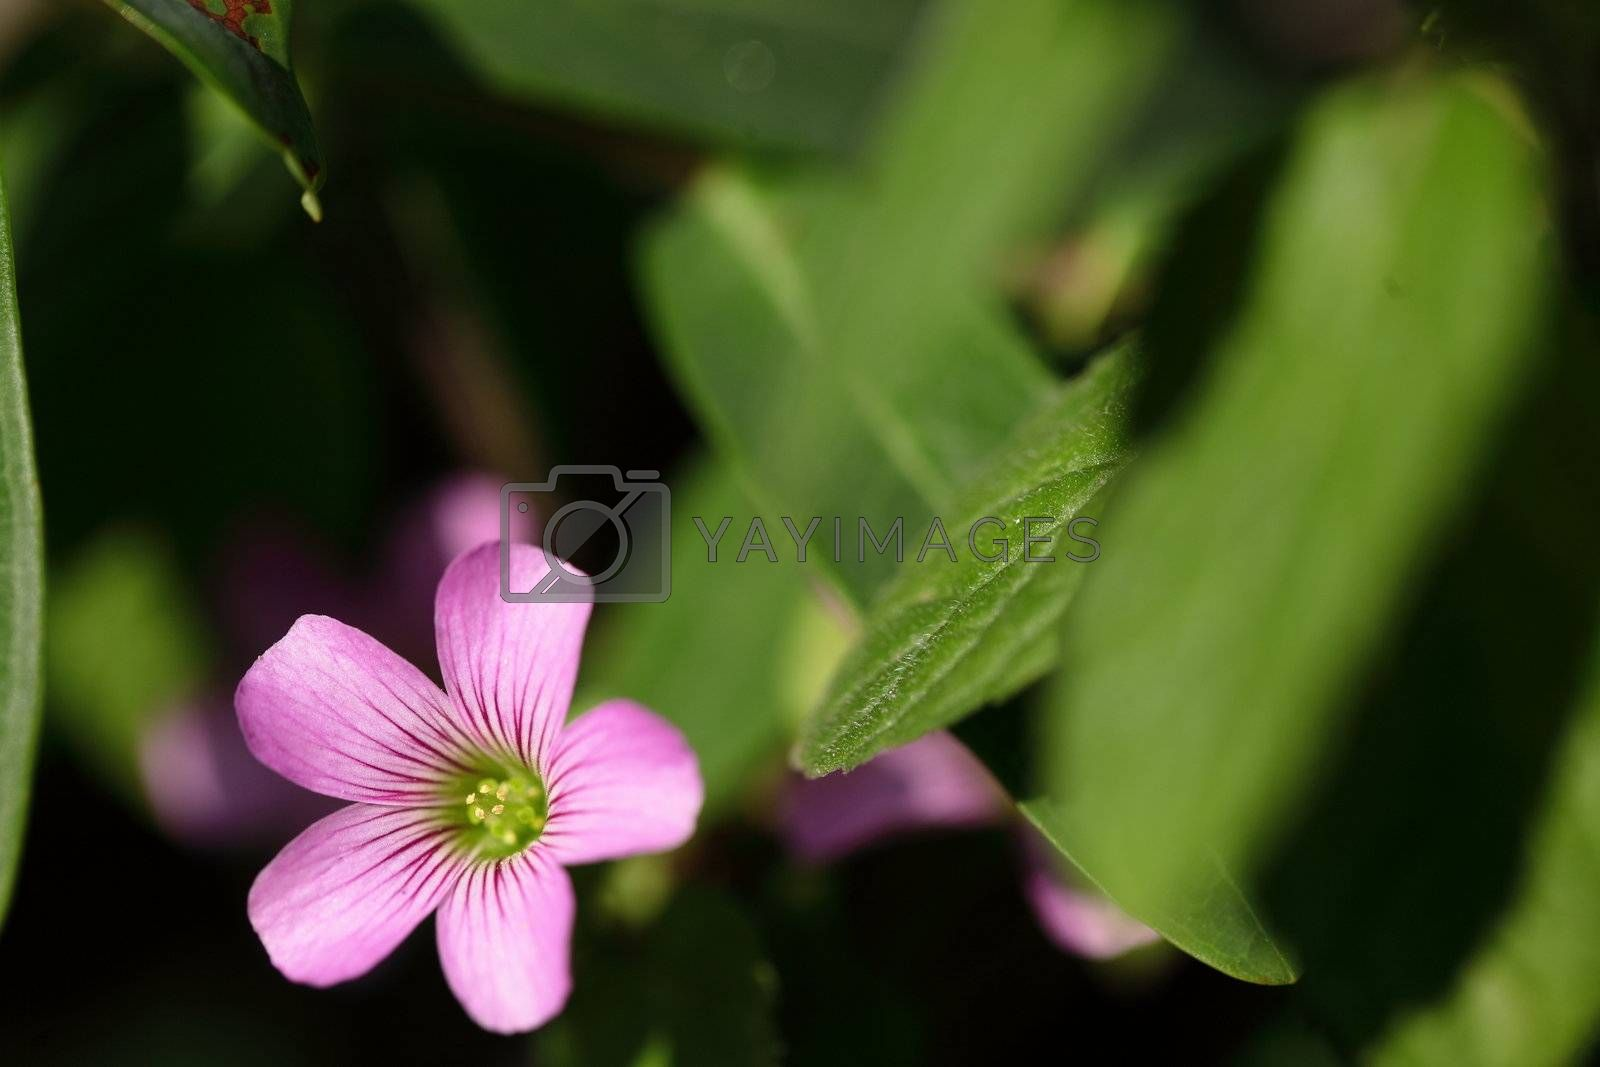 Royalty free image of flower by leungchopan